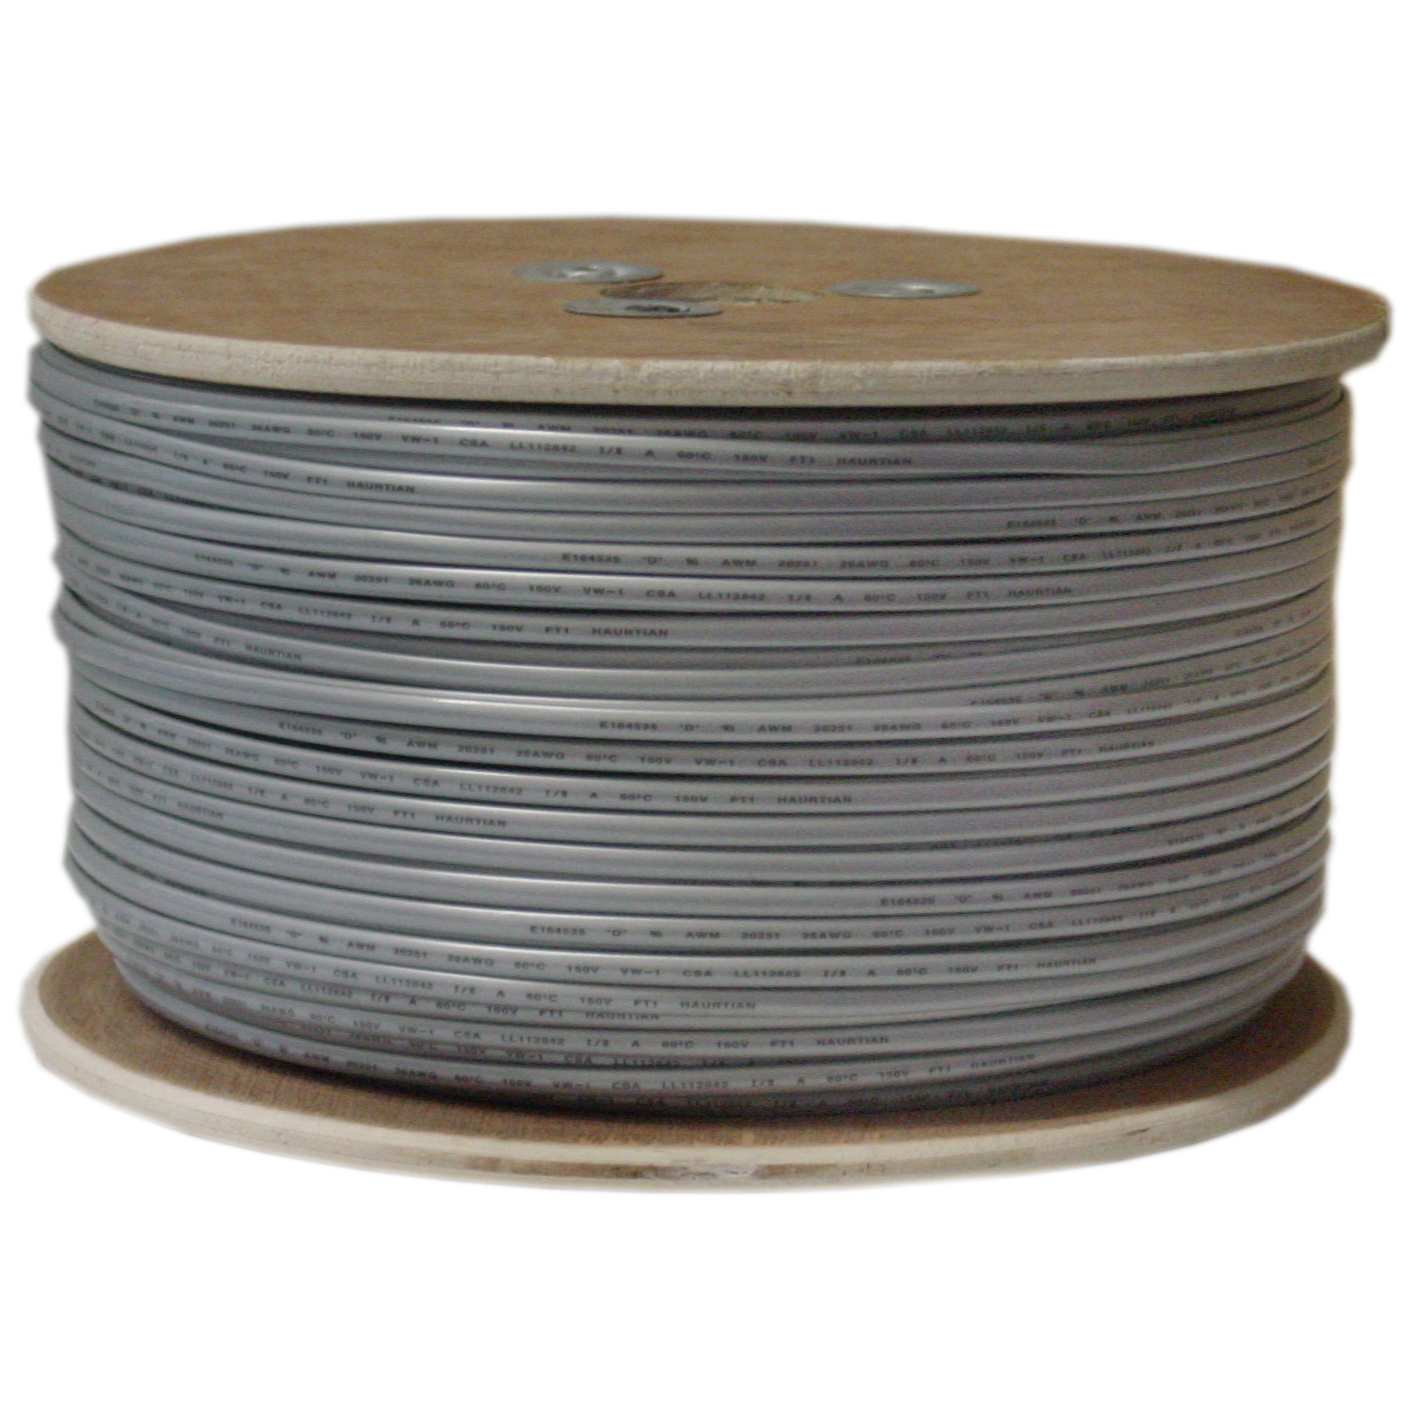 hight resolution of bulk phone cord silver satin 26 4 26 awg 4 conductor